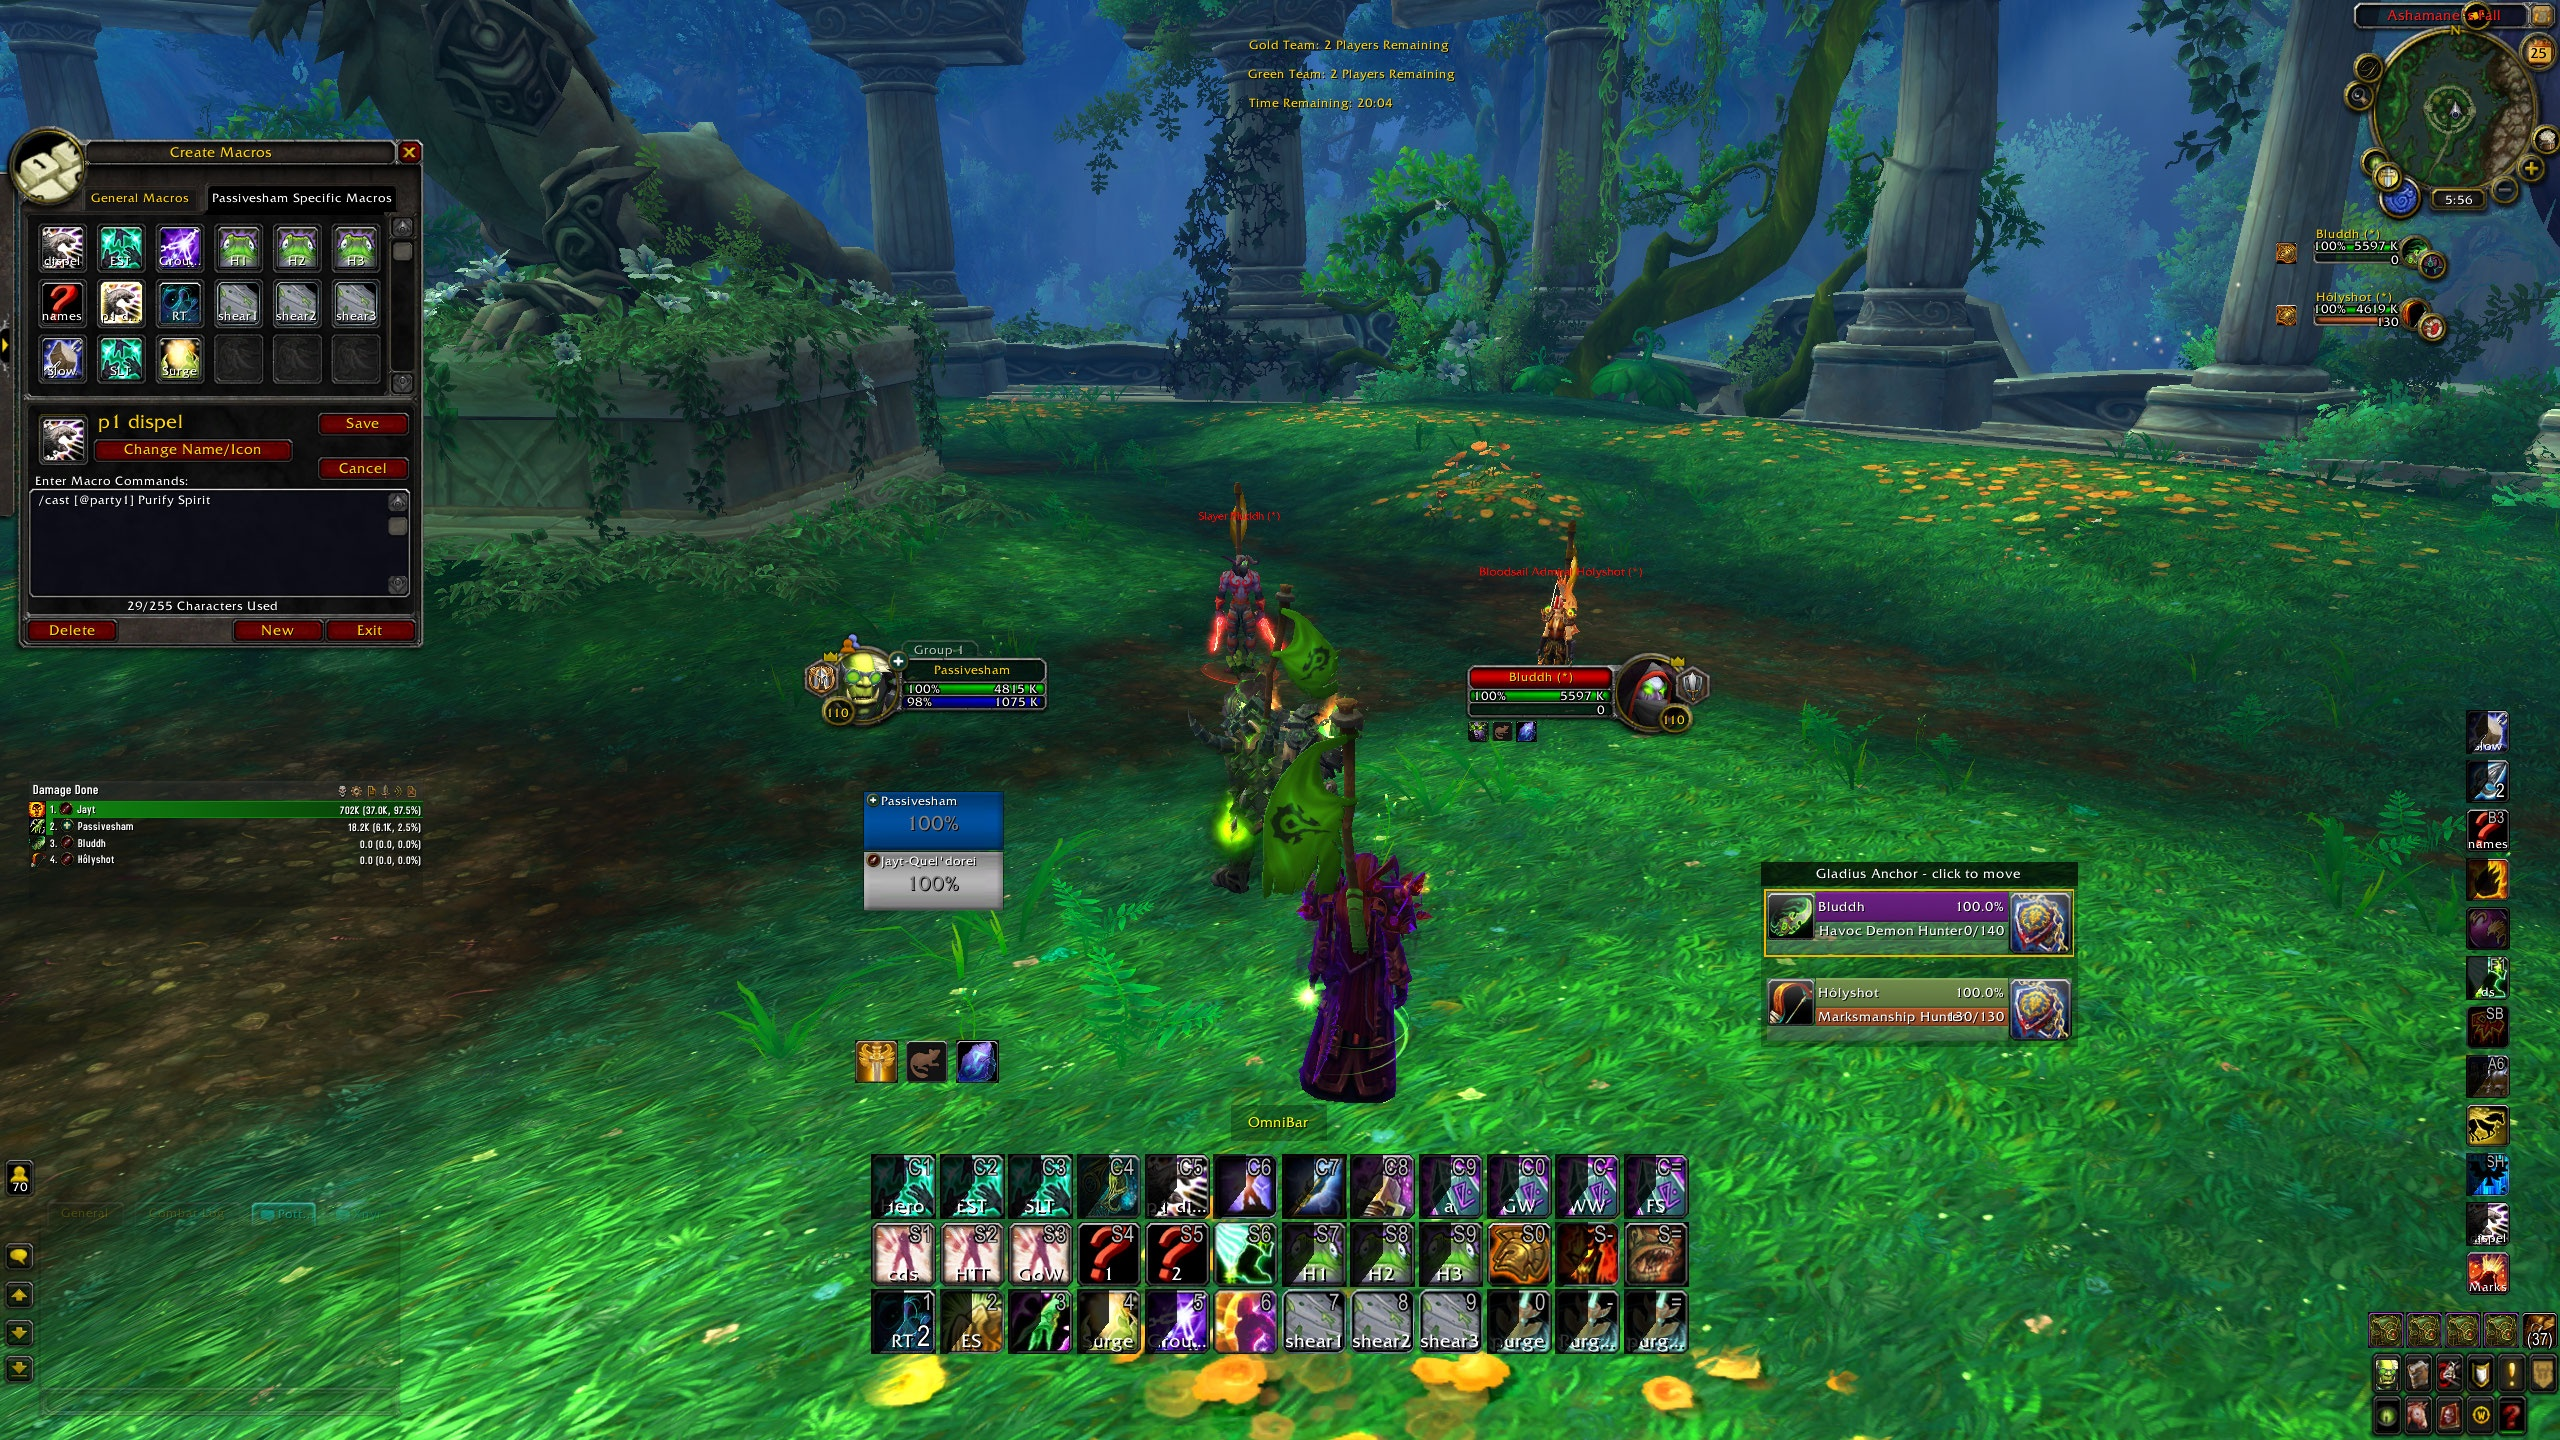 Macros for Arena PvP - Guides - Wowhead